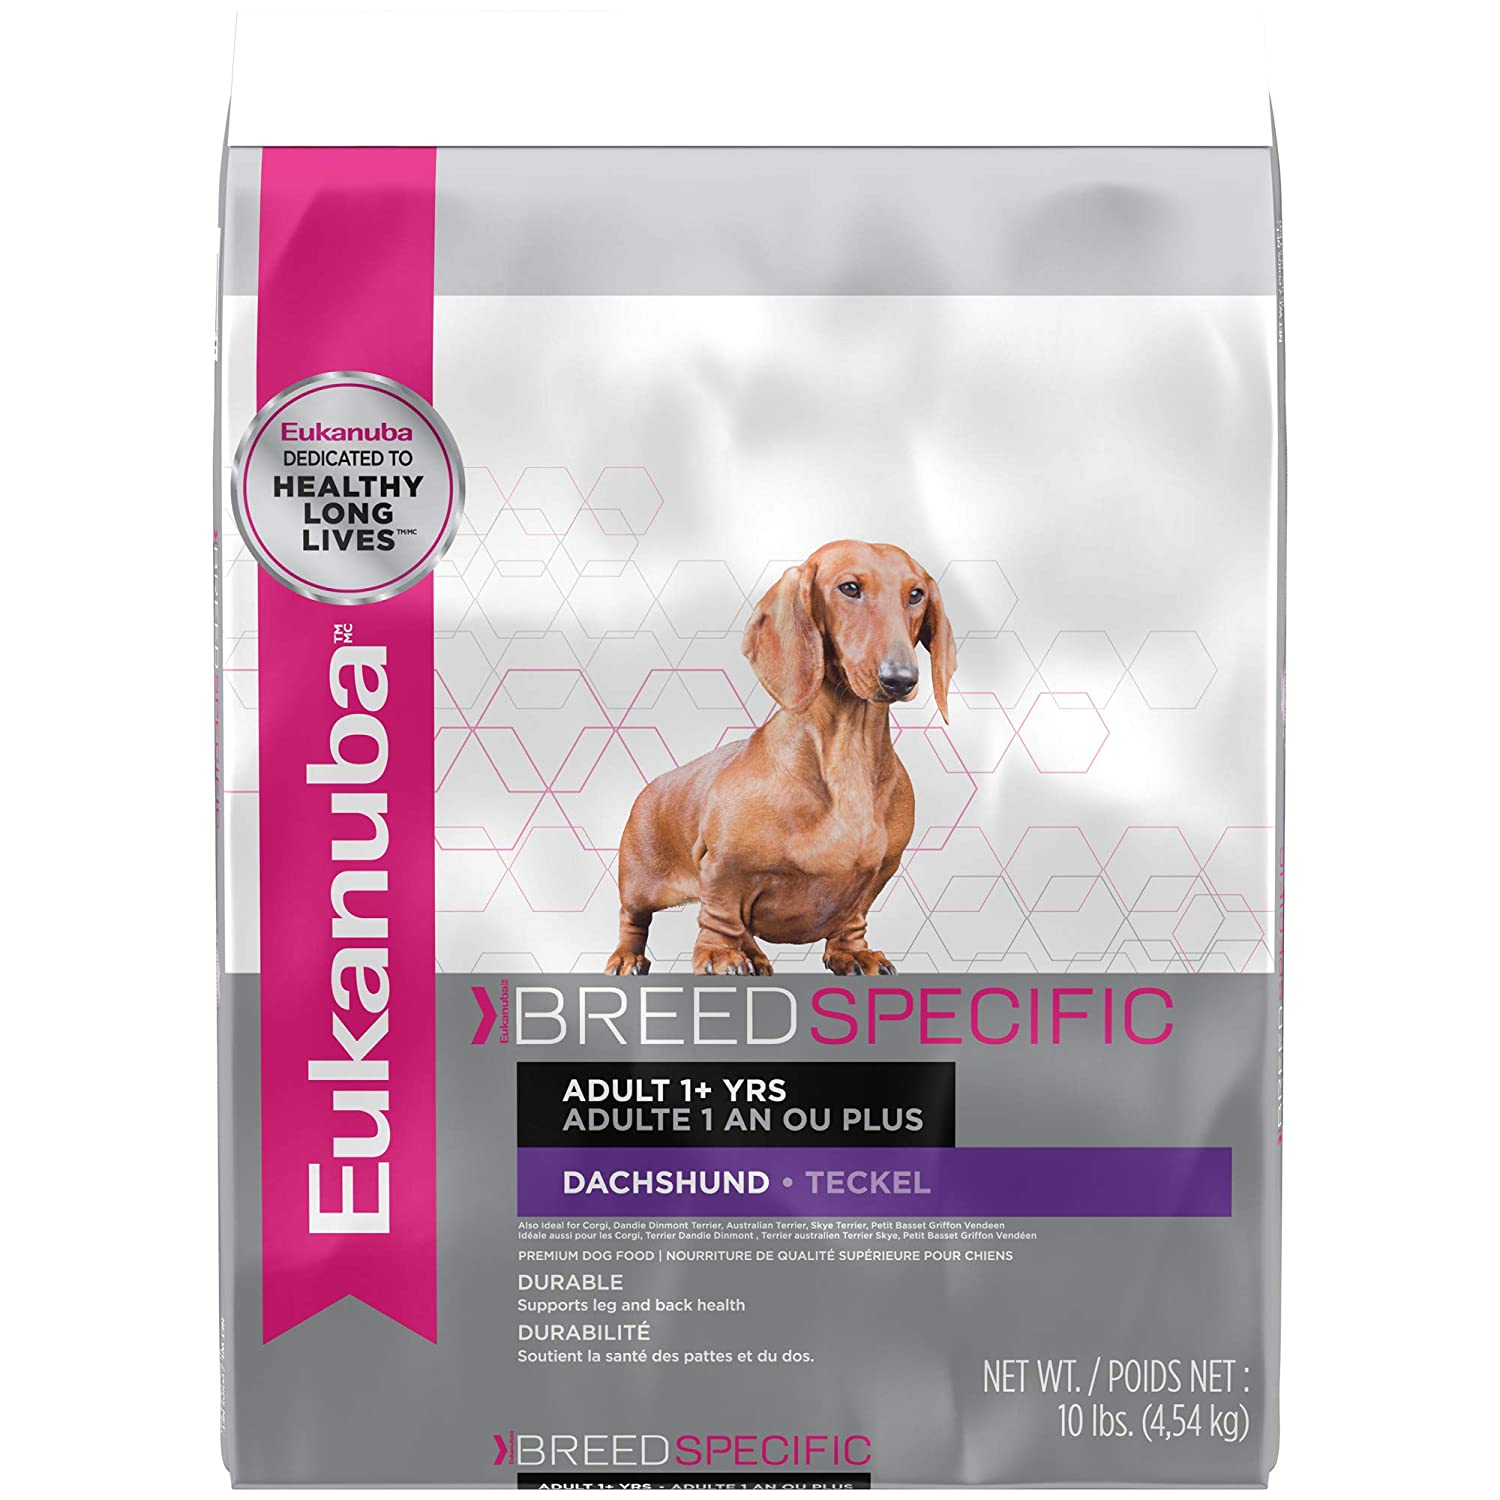 10 lbs. Eukanuba Breed Specific Adult Dachshund Dog Food 10 Pounds